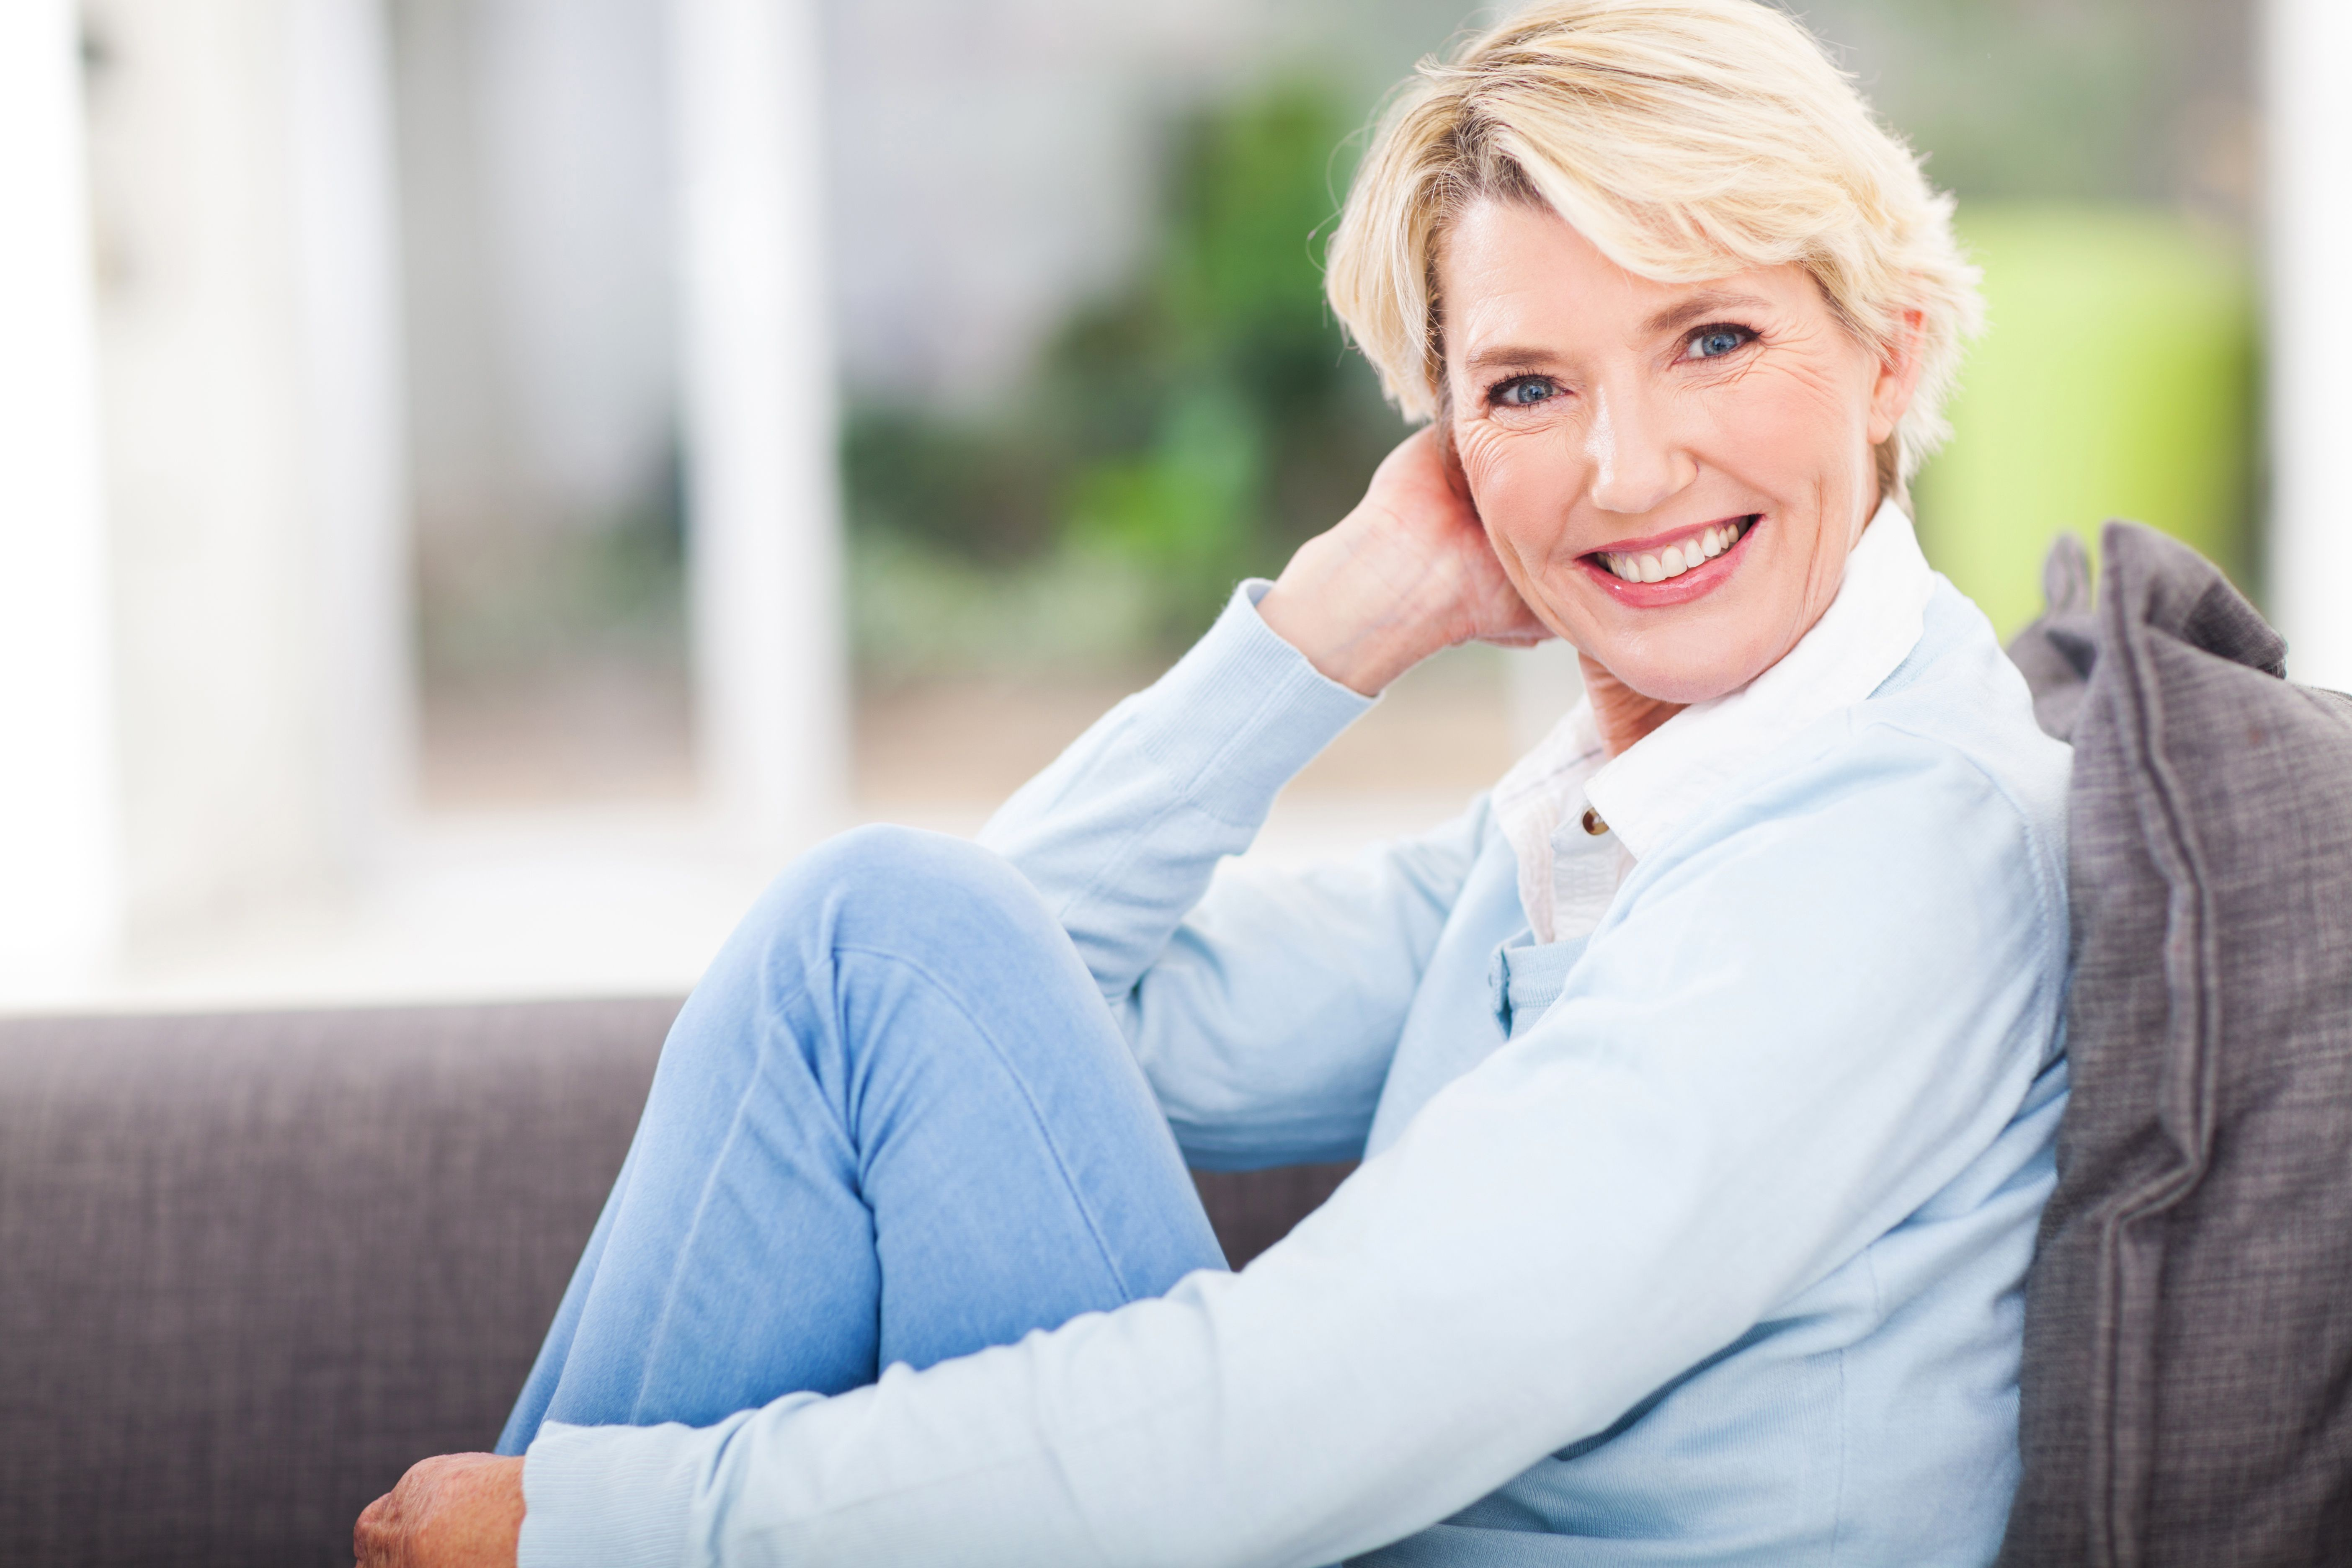 Mature Woman Sitting on Couch in a Blue Dress Shirt and Jeans